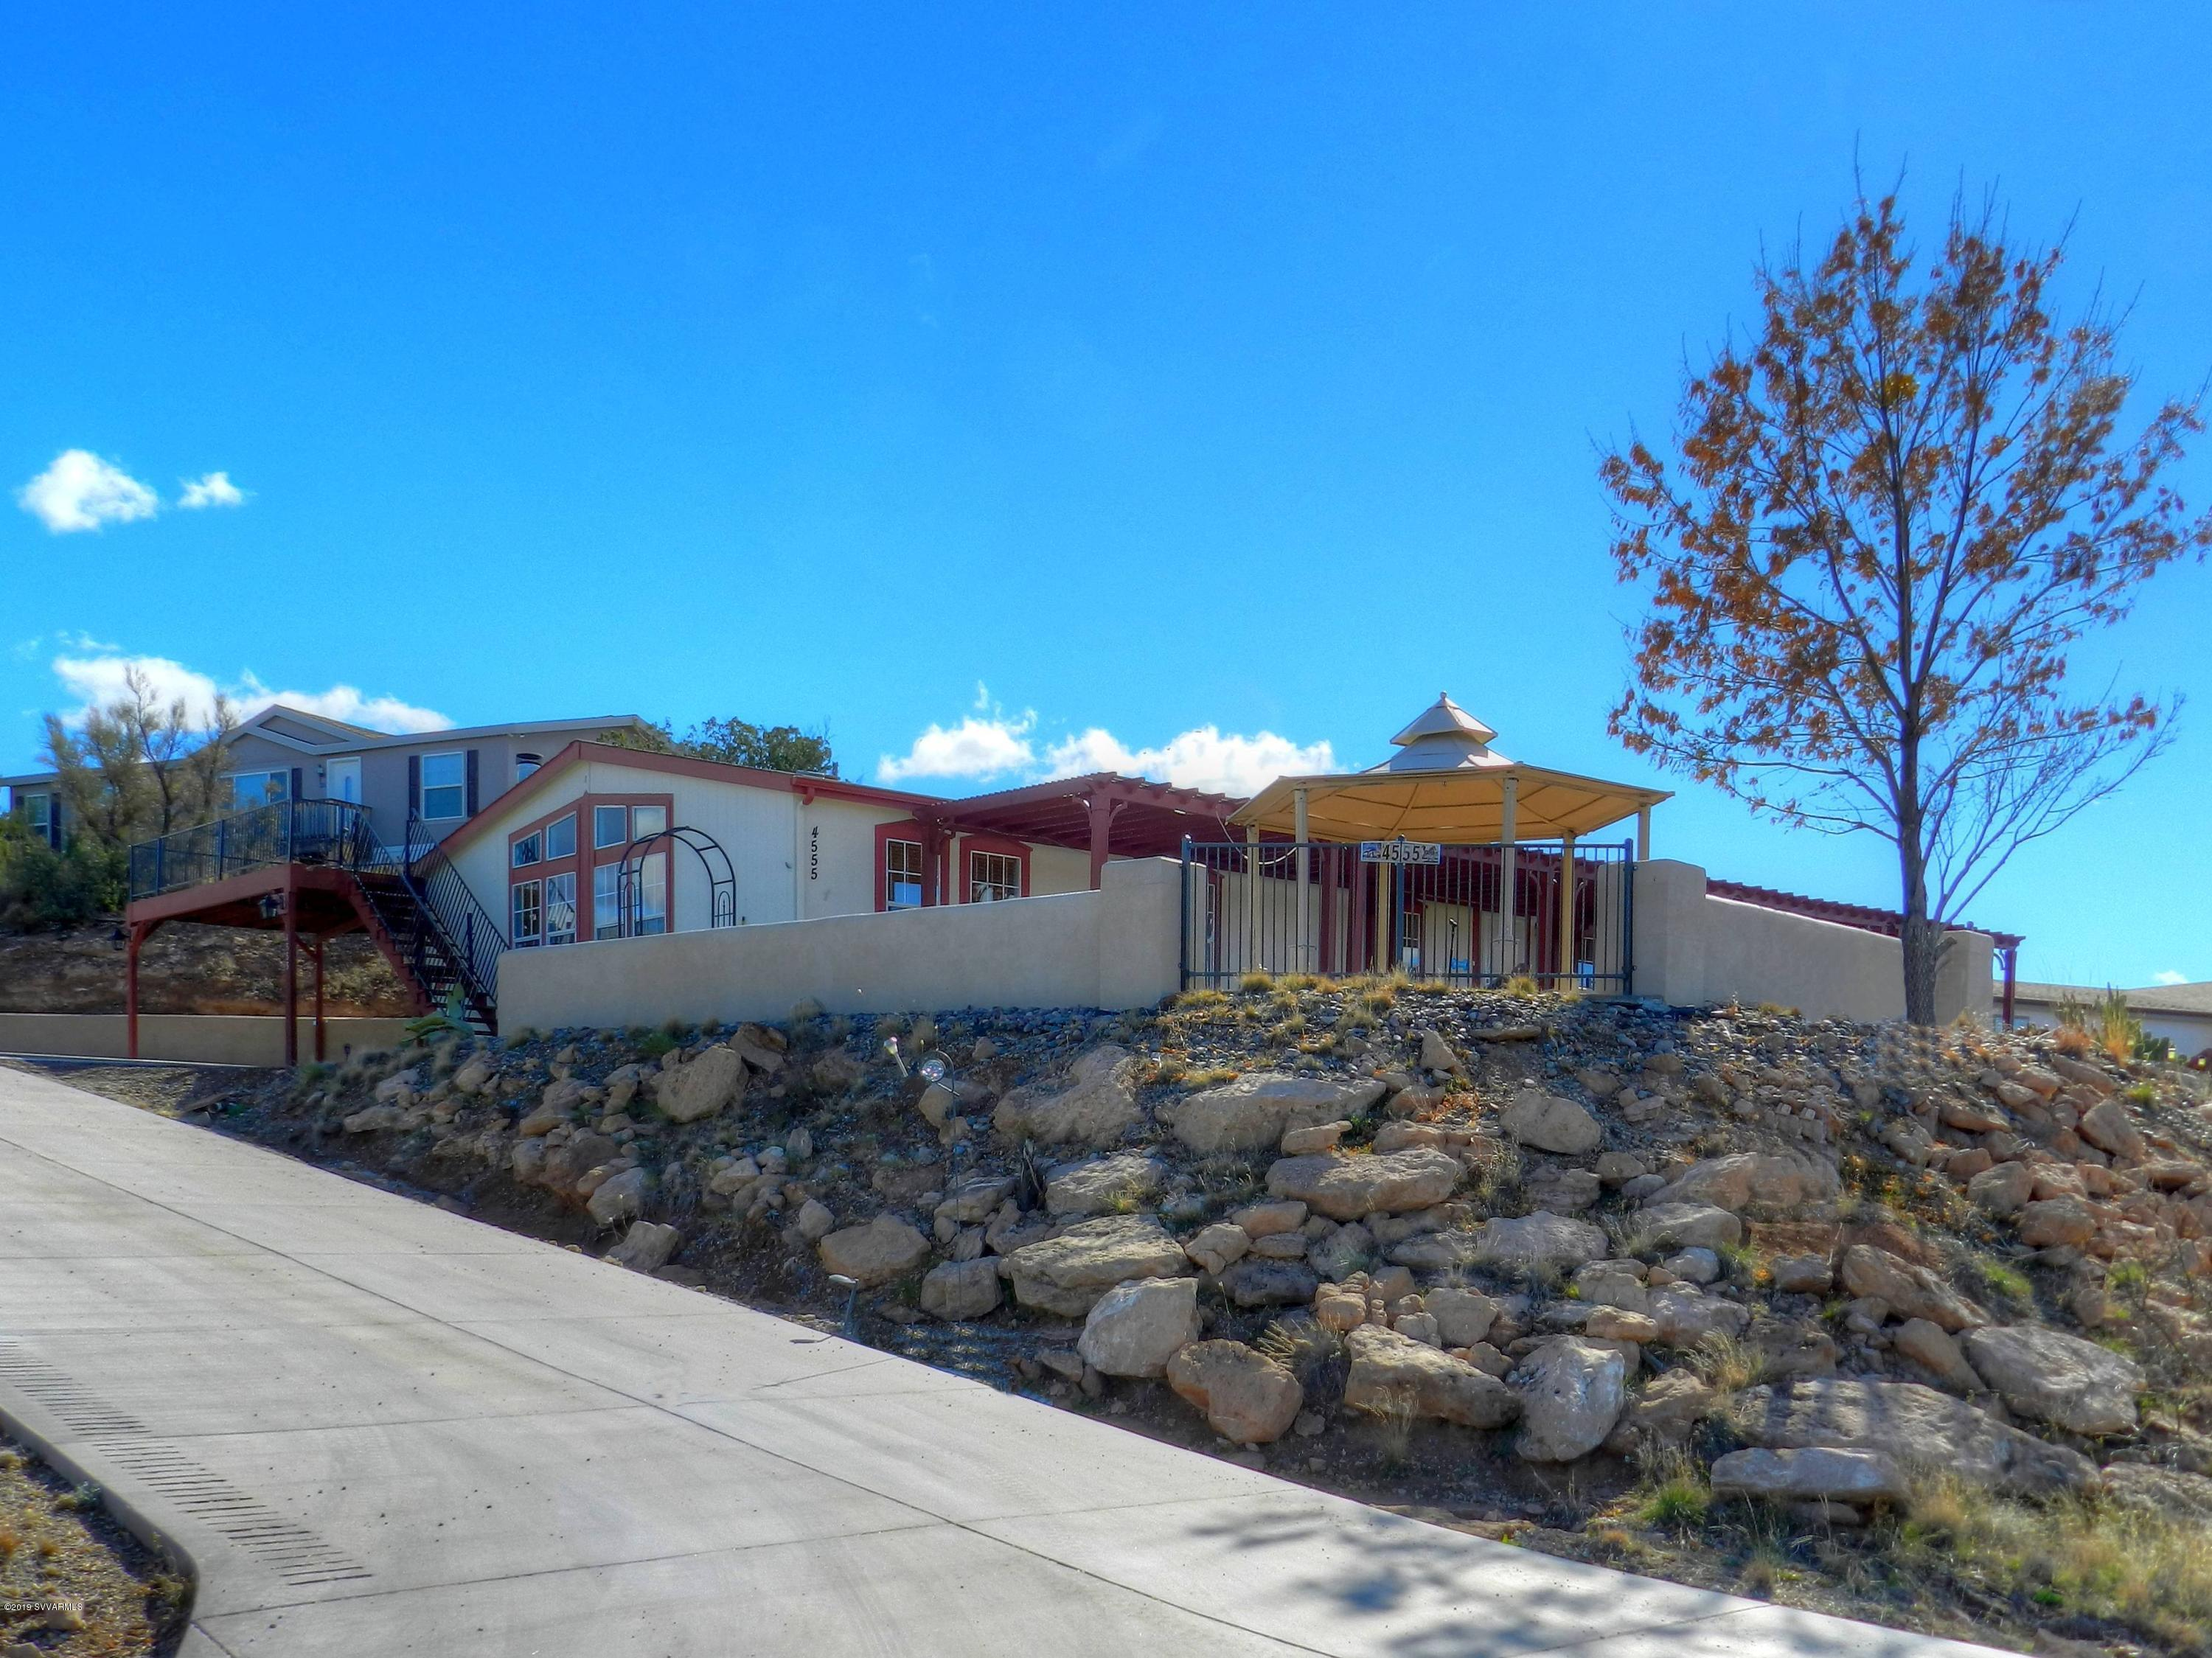 4555 Lazy Lariat Lane Rimrock, AZ 86335